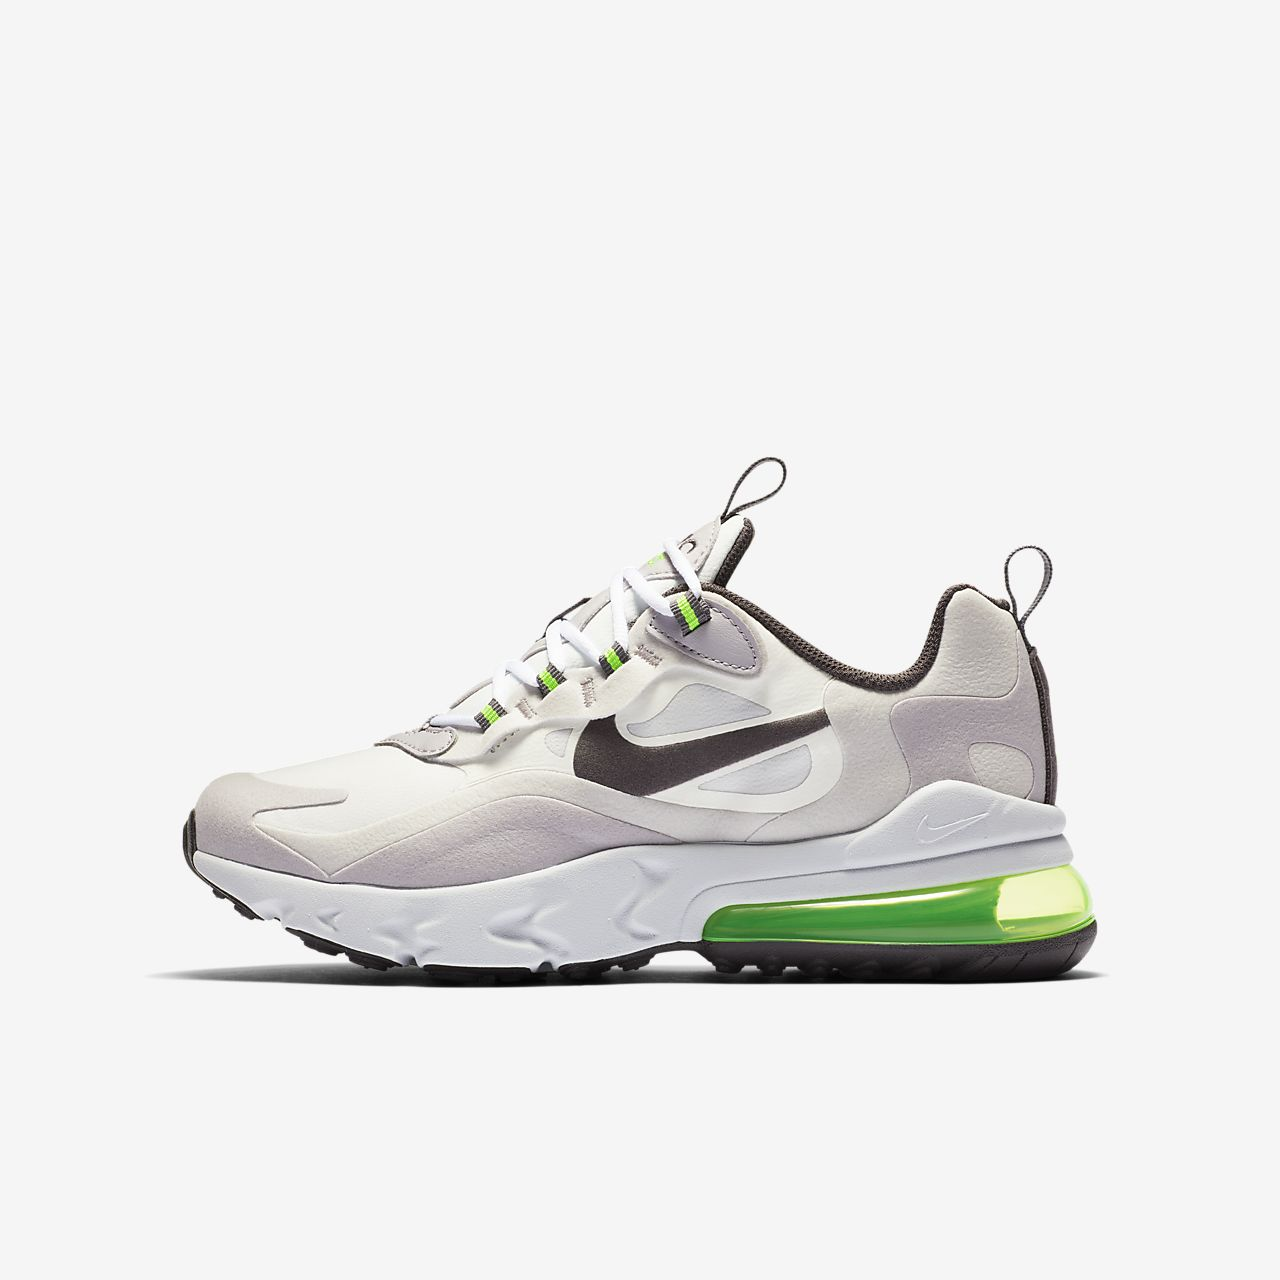 Nike Air Max Girls : Shop the latest selection of Nike ,Air